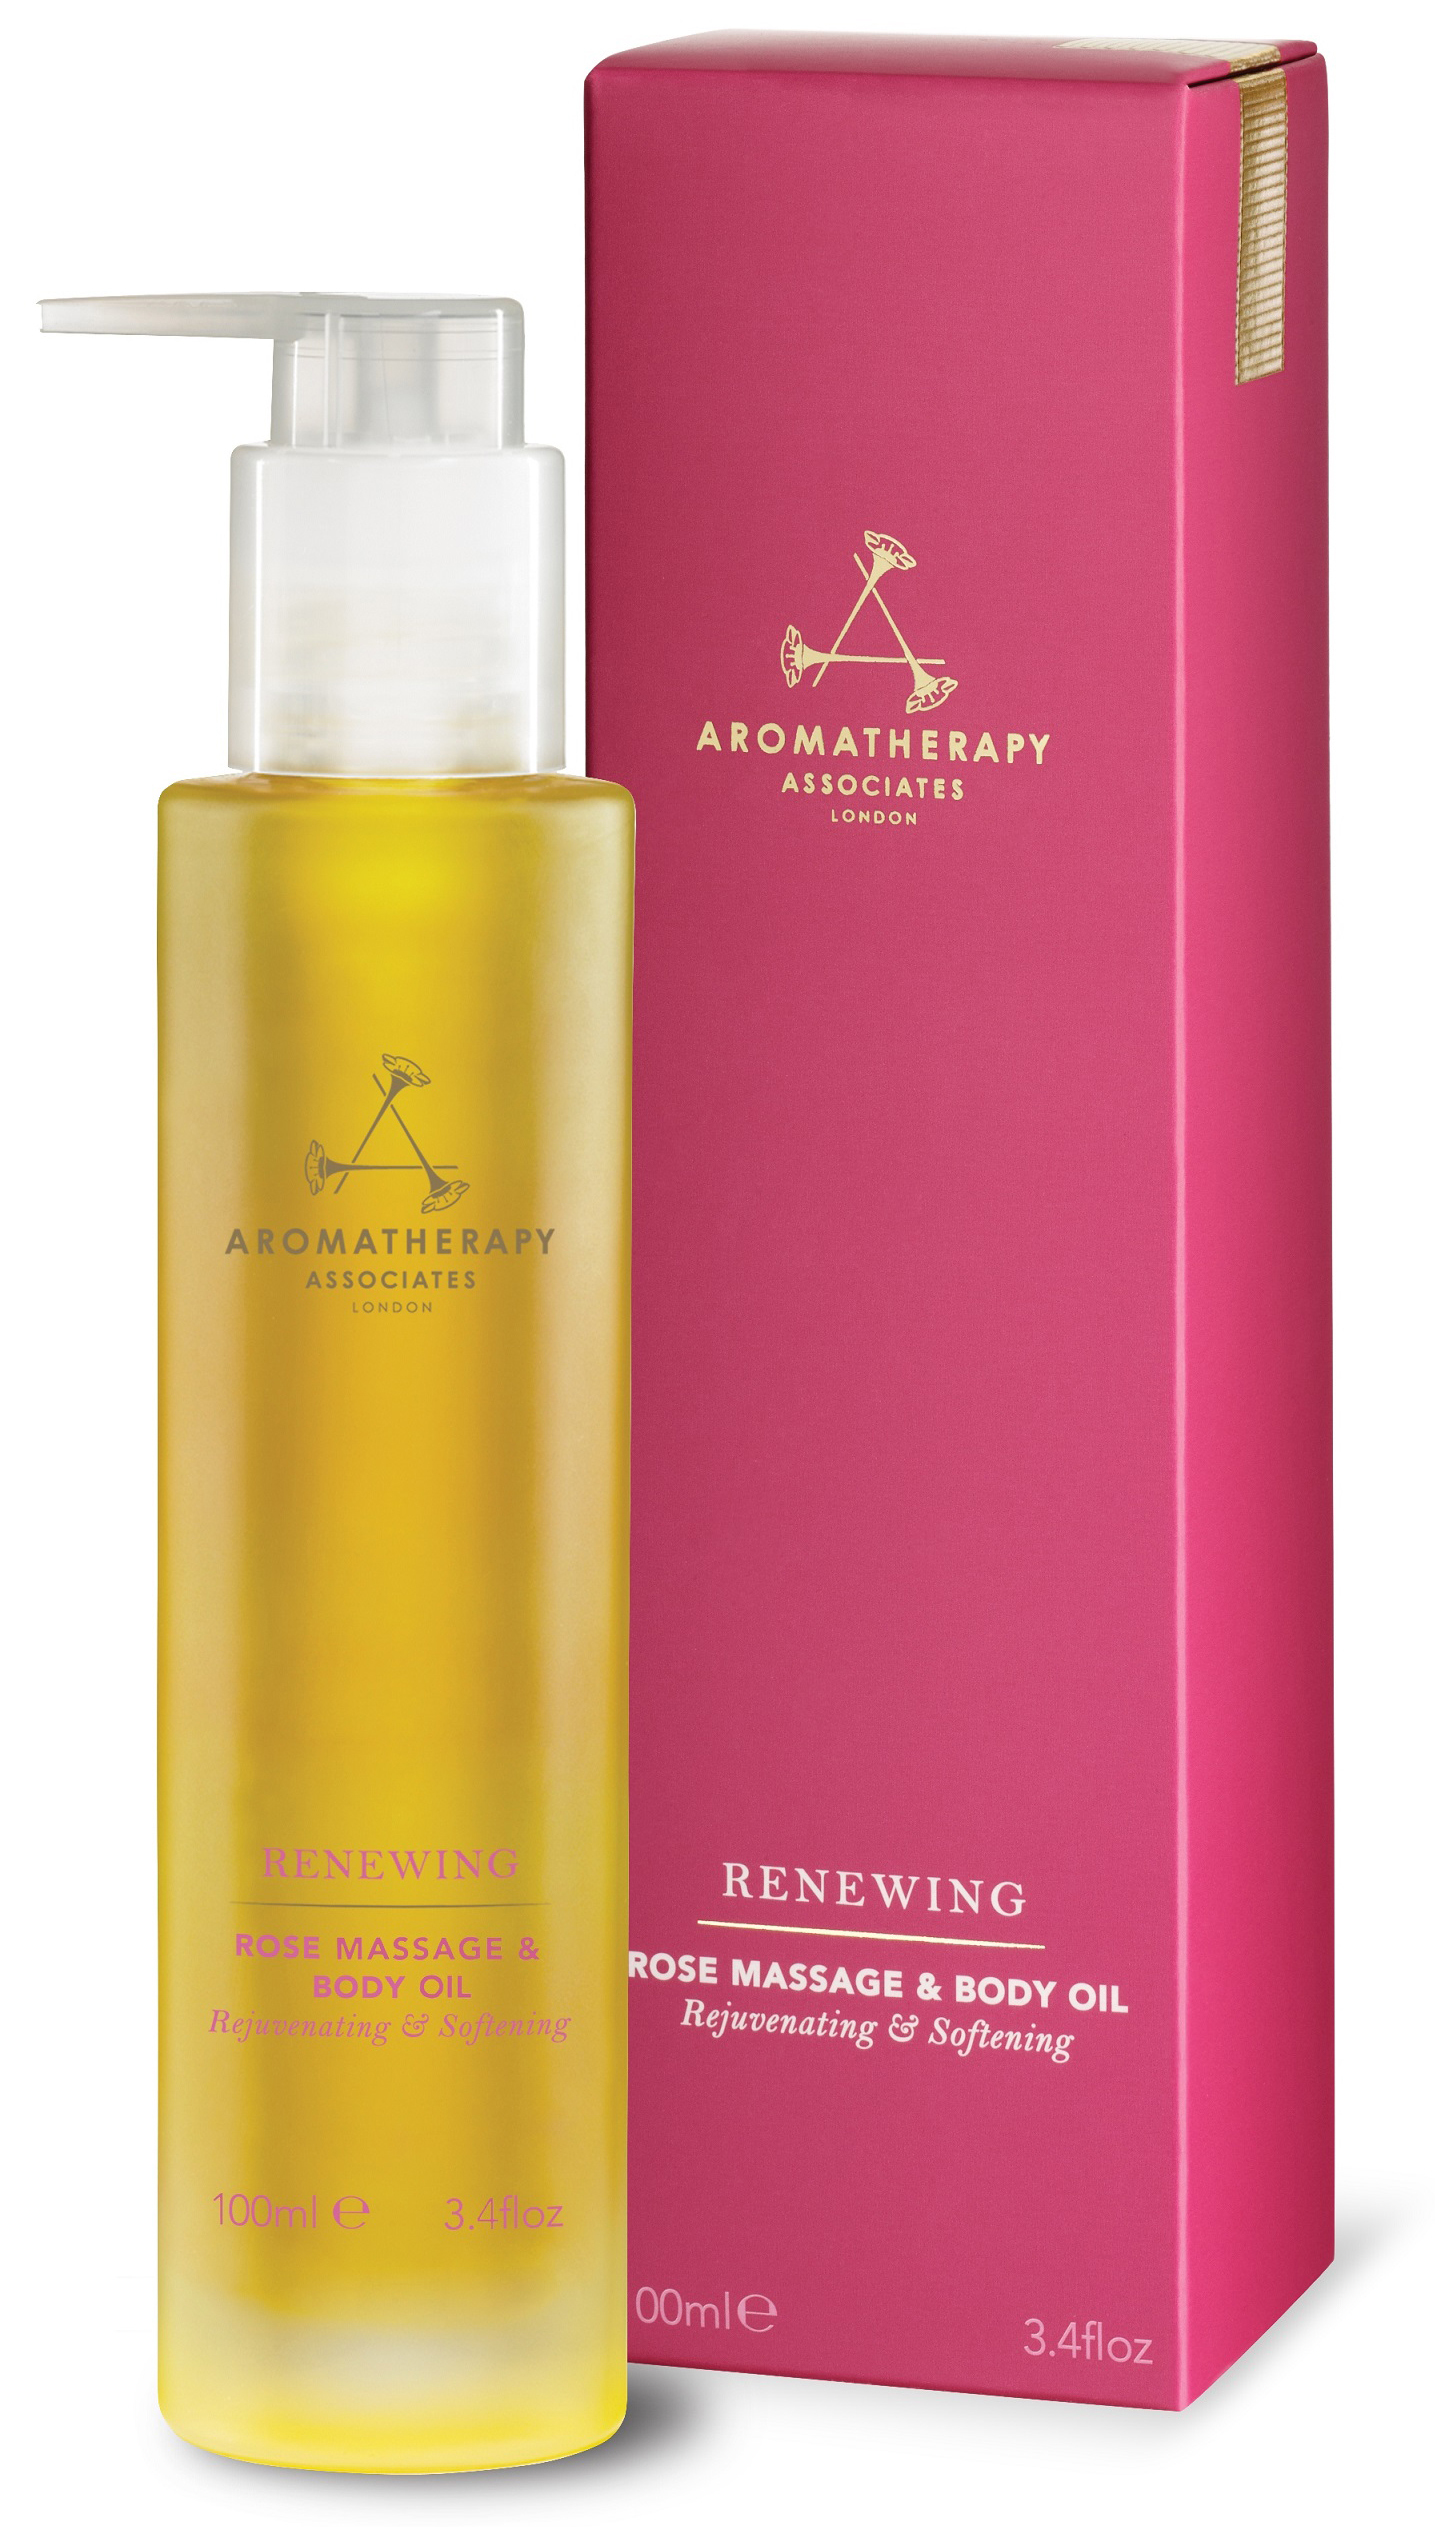 Aromatherapy Associates Renewing Rose Massage & Body Oil, £41